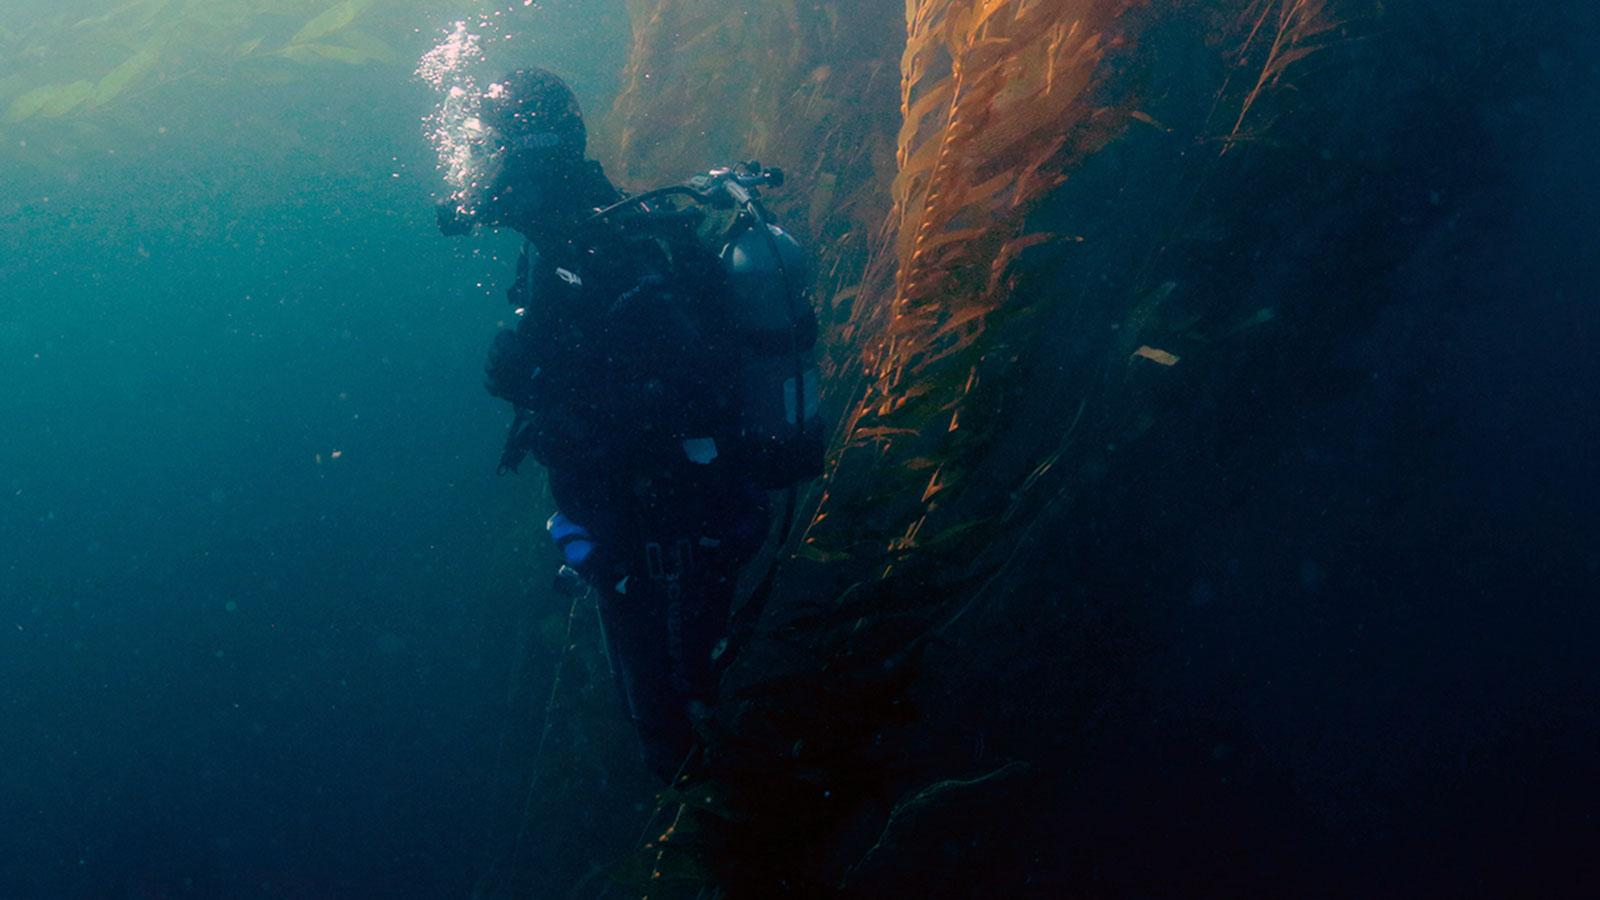 'The Delicacy' Documentary Sinks into 'Dangerous, Reckless' Realm of Sea Urchin Divers